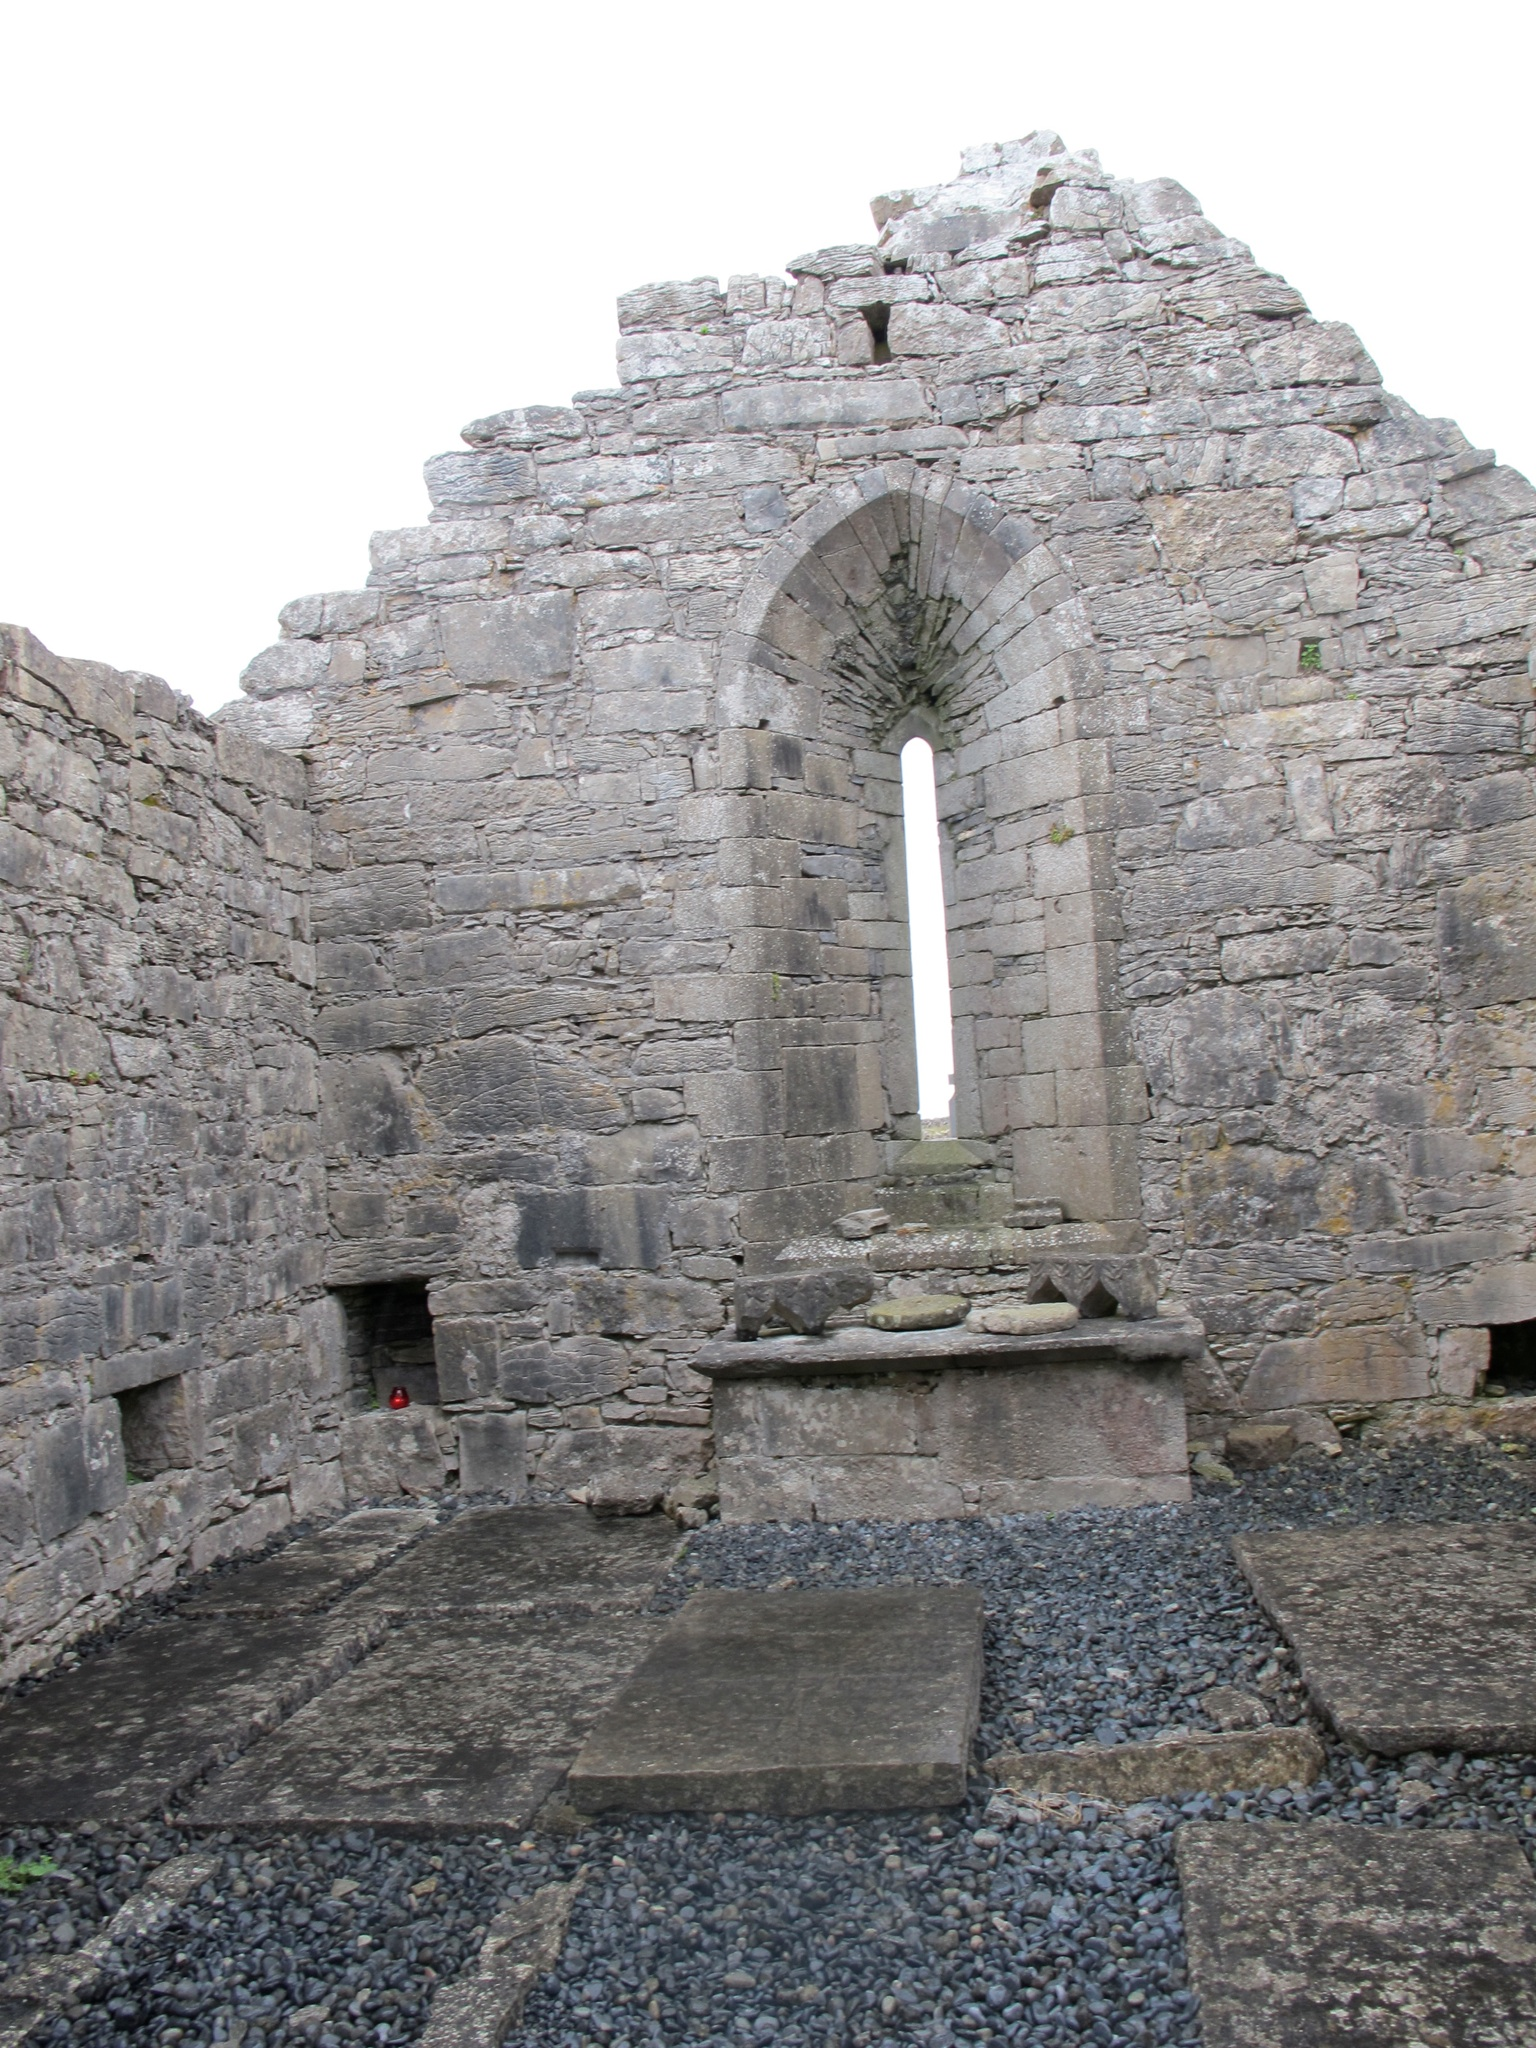 The inside of Teampull Bheanáin, you can see what is believed to be a shrine to beloved St. Patrick.